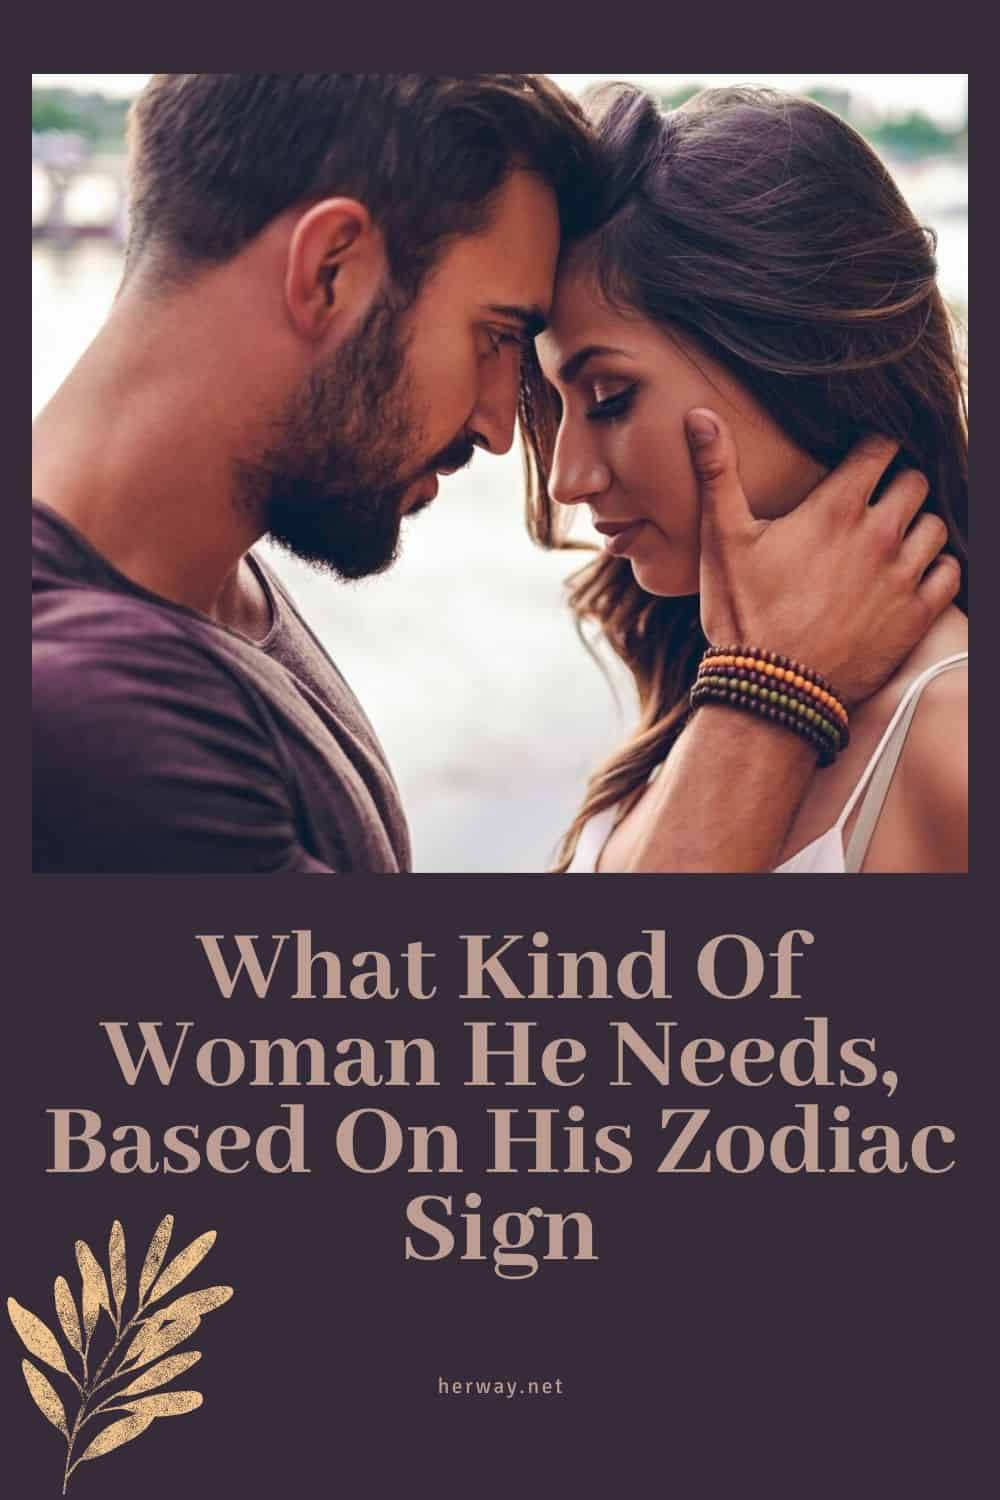 What Kind Of Woman He Needs, Based On His Zodiac Sign